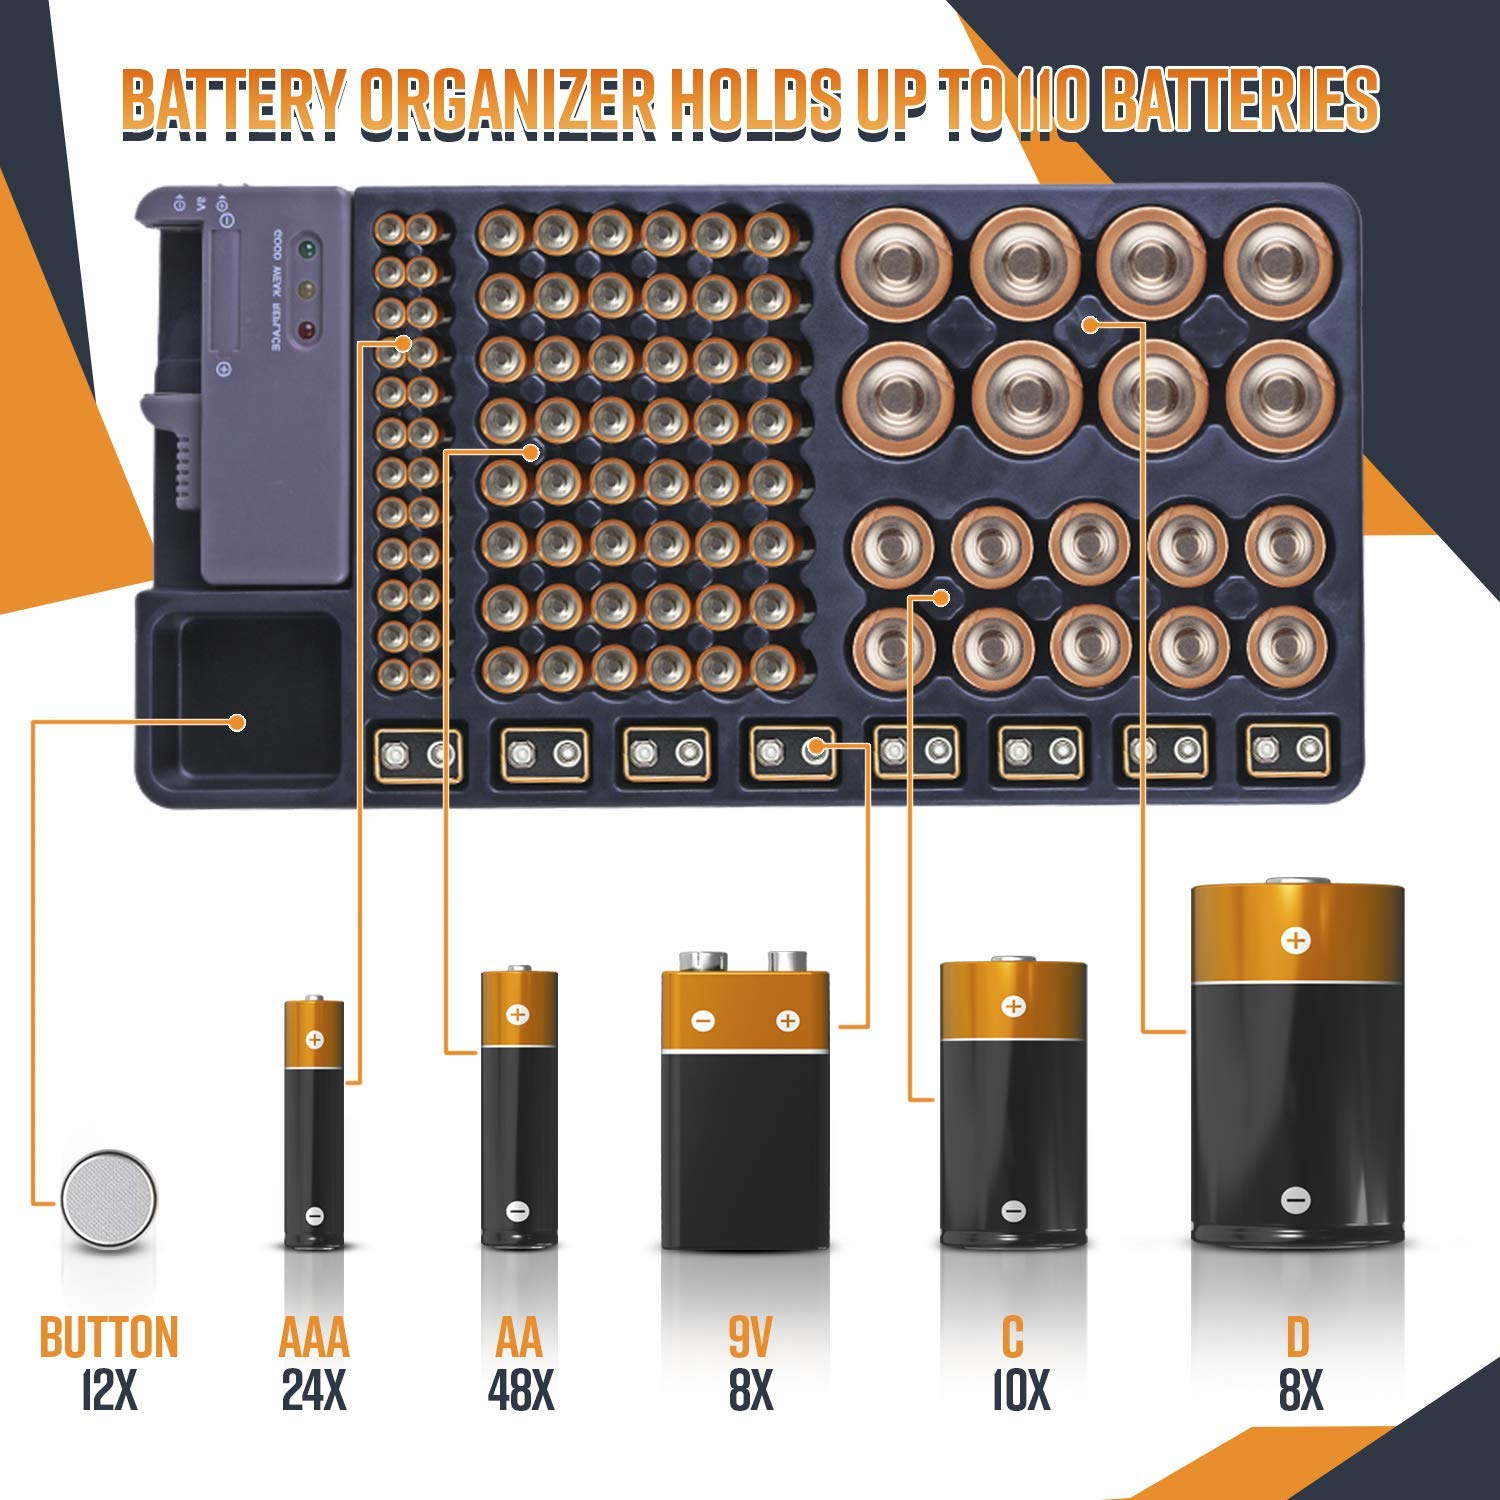 BatteryCapsule Storage Organizer with Energy Tester